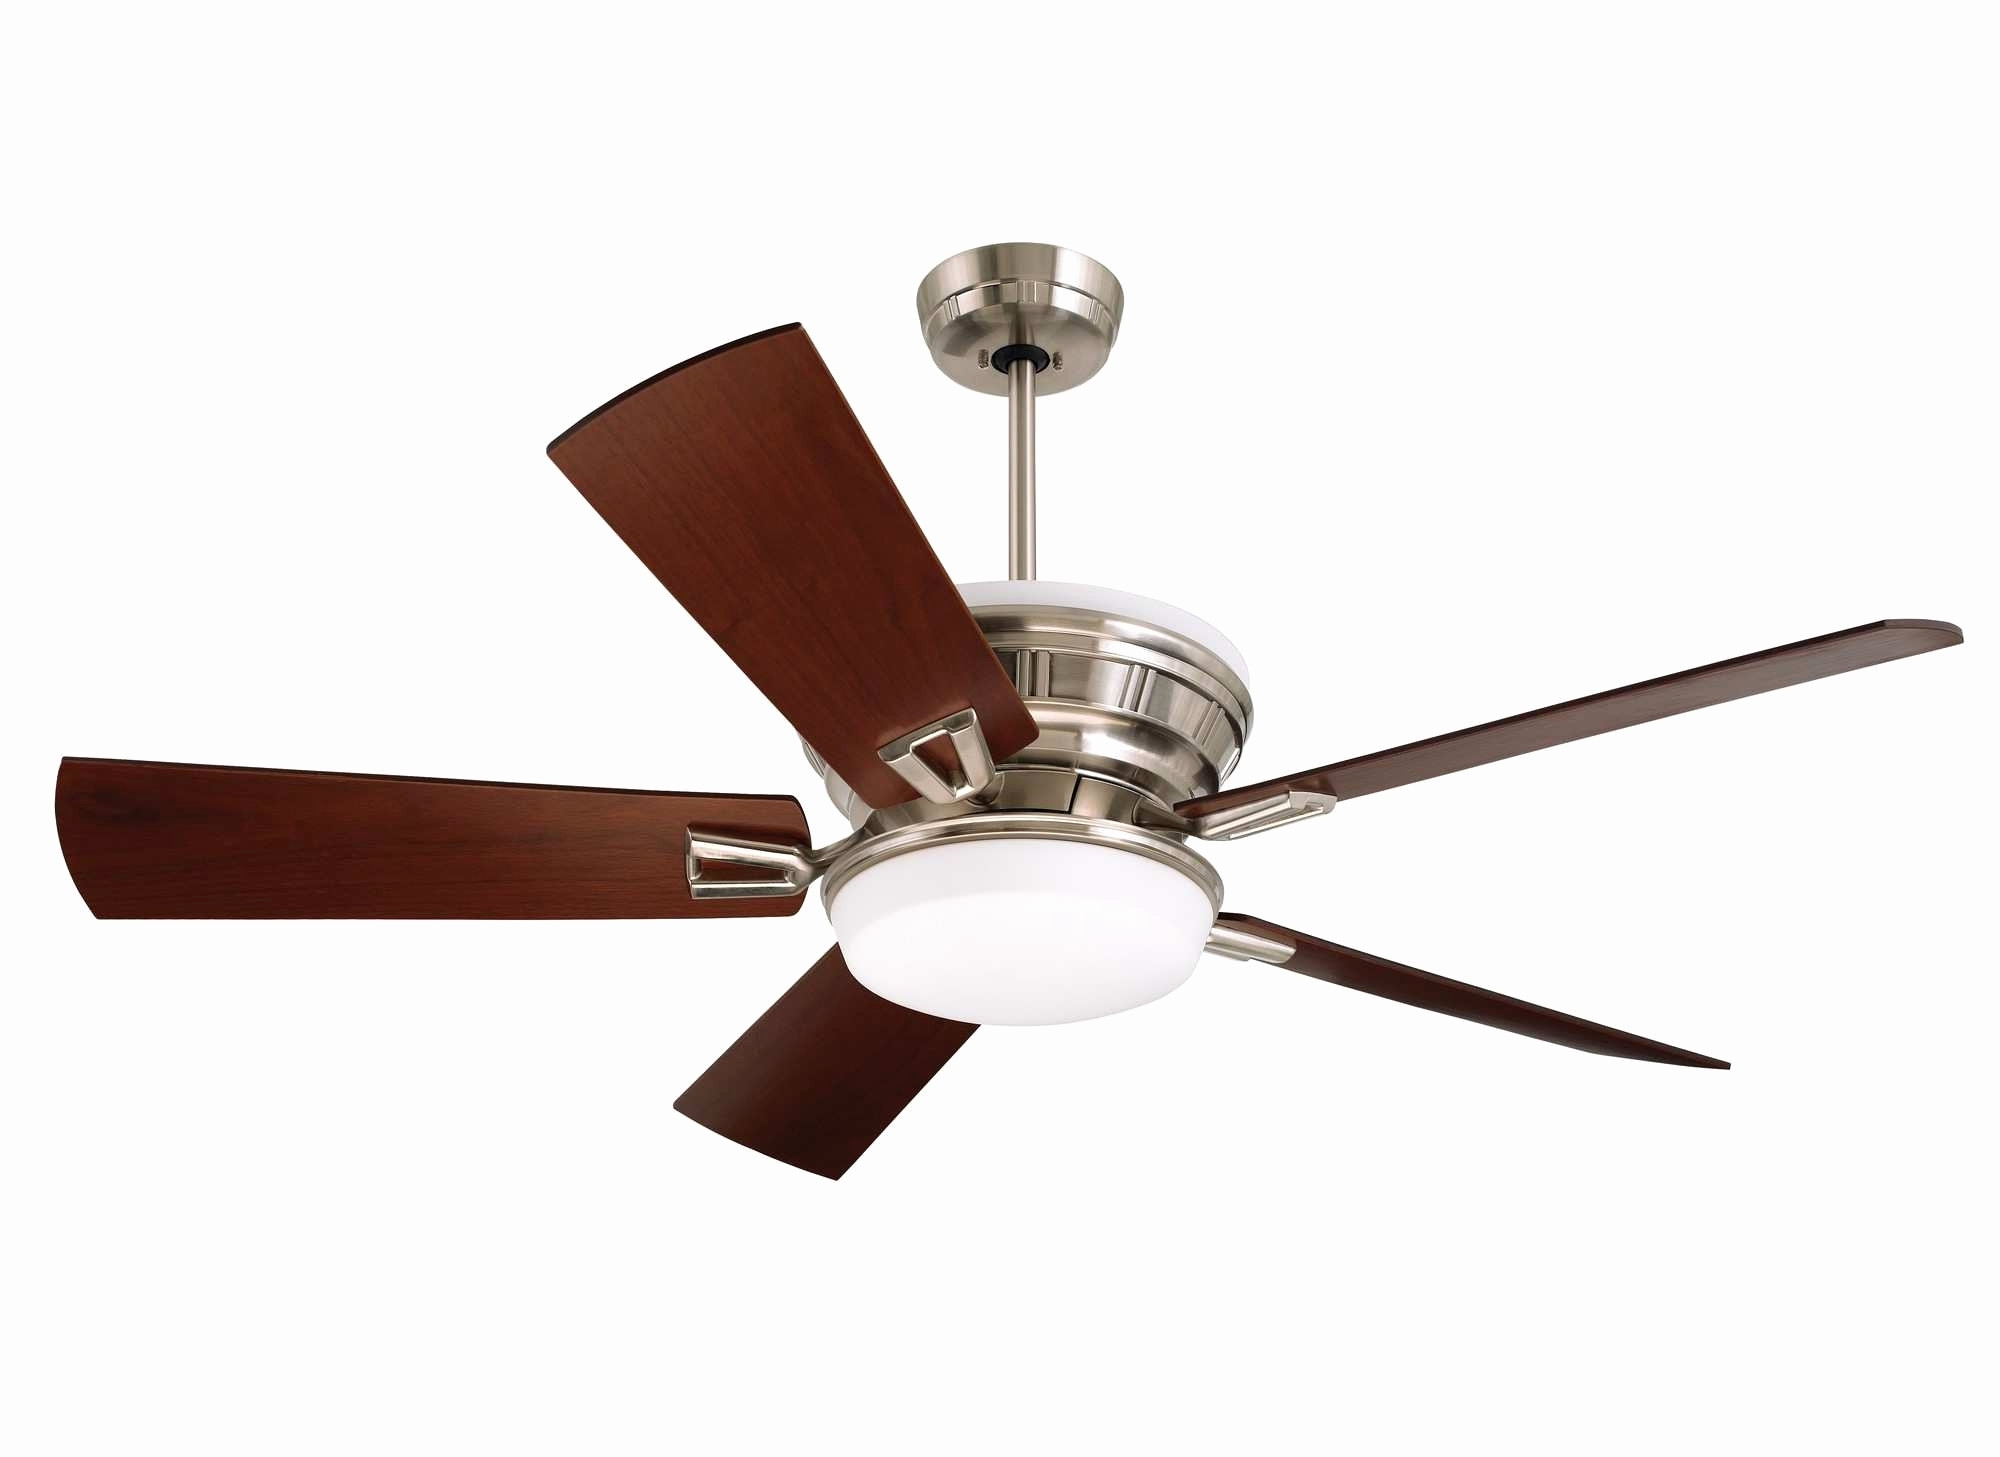 Most Recent Best Energy Star Ceiling Fans Luxury Home Depot Outdoor Ceiling Fans Inside Energy Star Outdoor Ceiling Fans With Light (View 8 of 20)